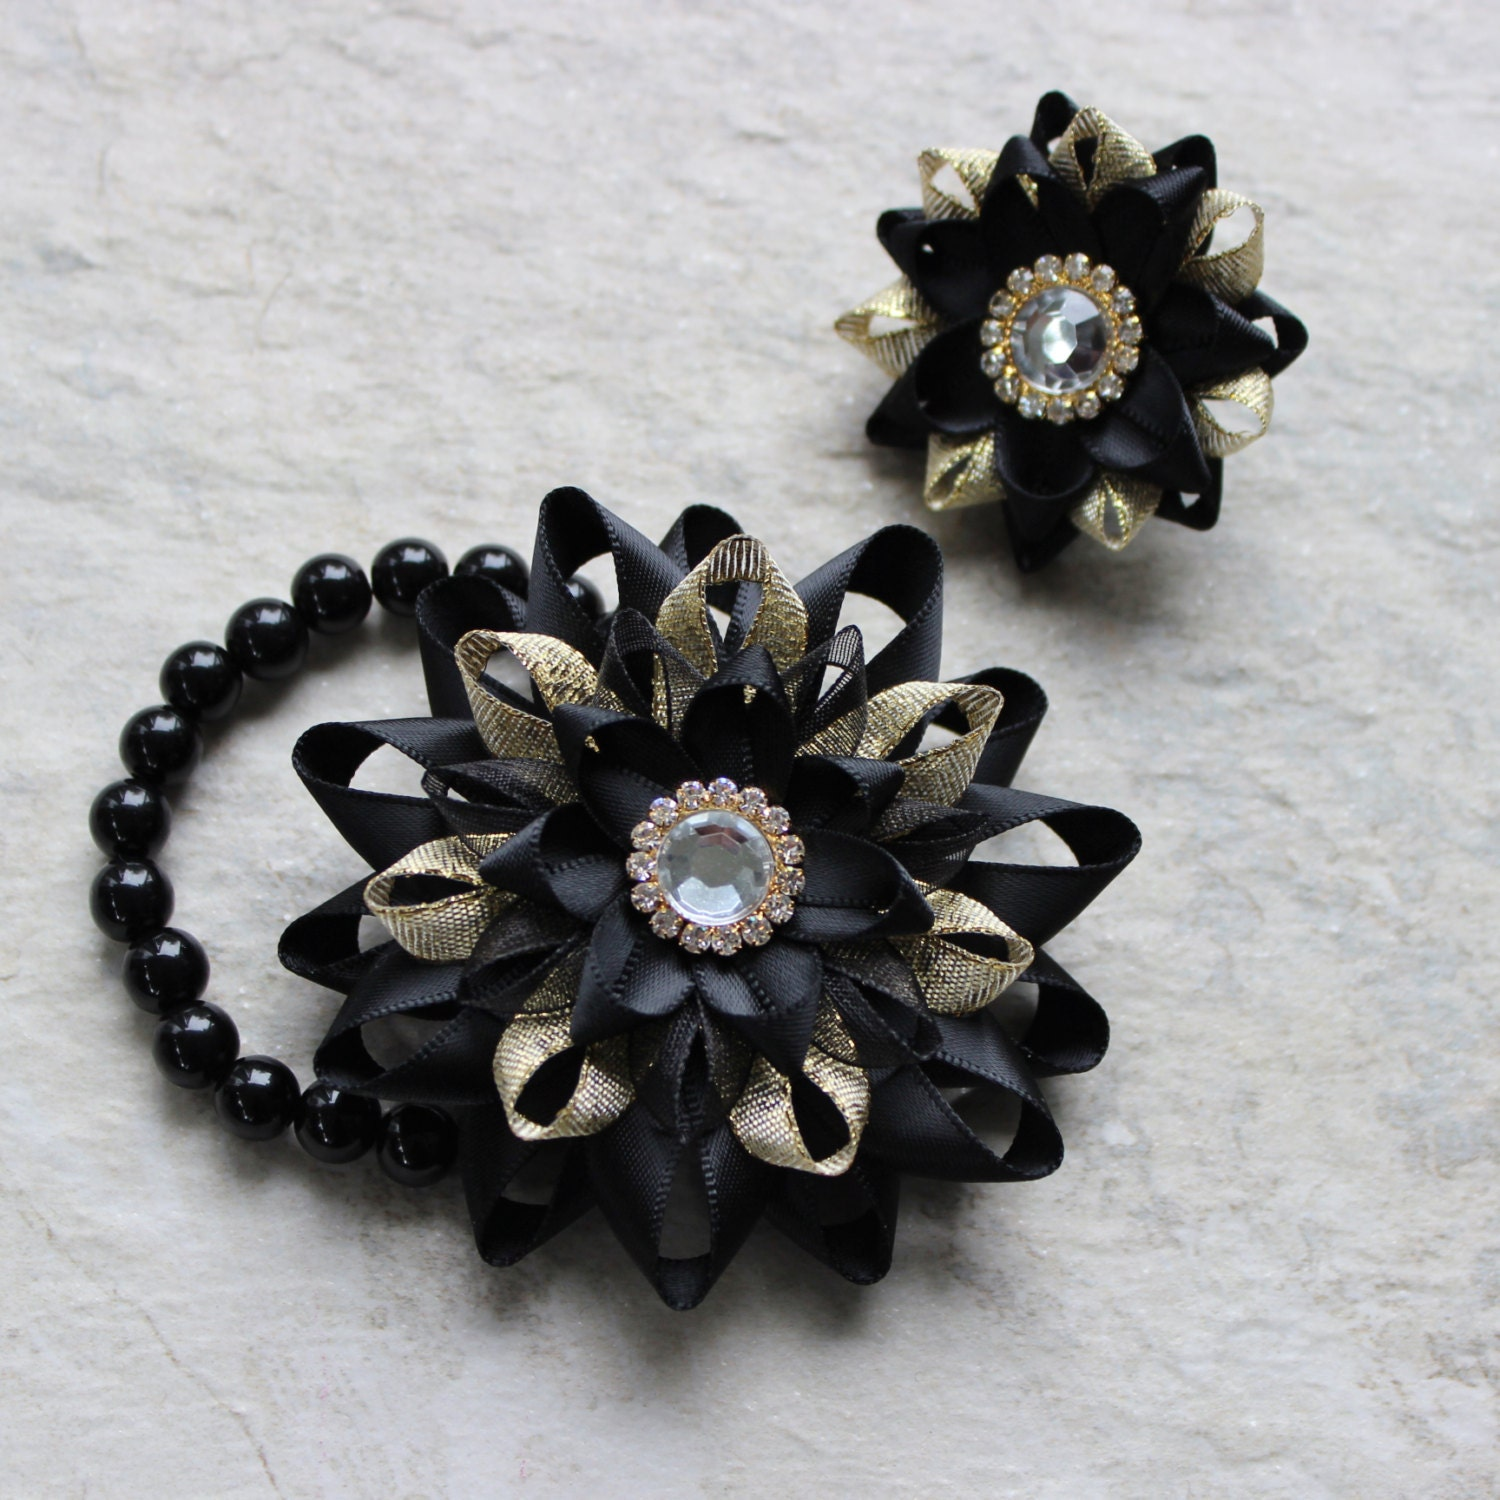 Prom Corsage And Boutonniere Black And Gold Corsage Wrist Corsage